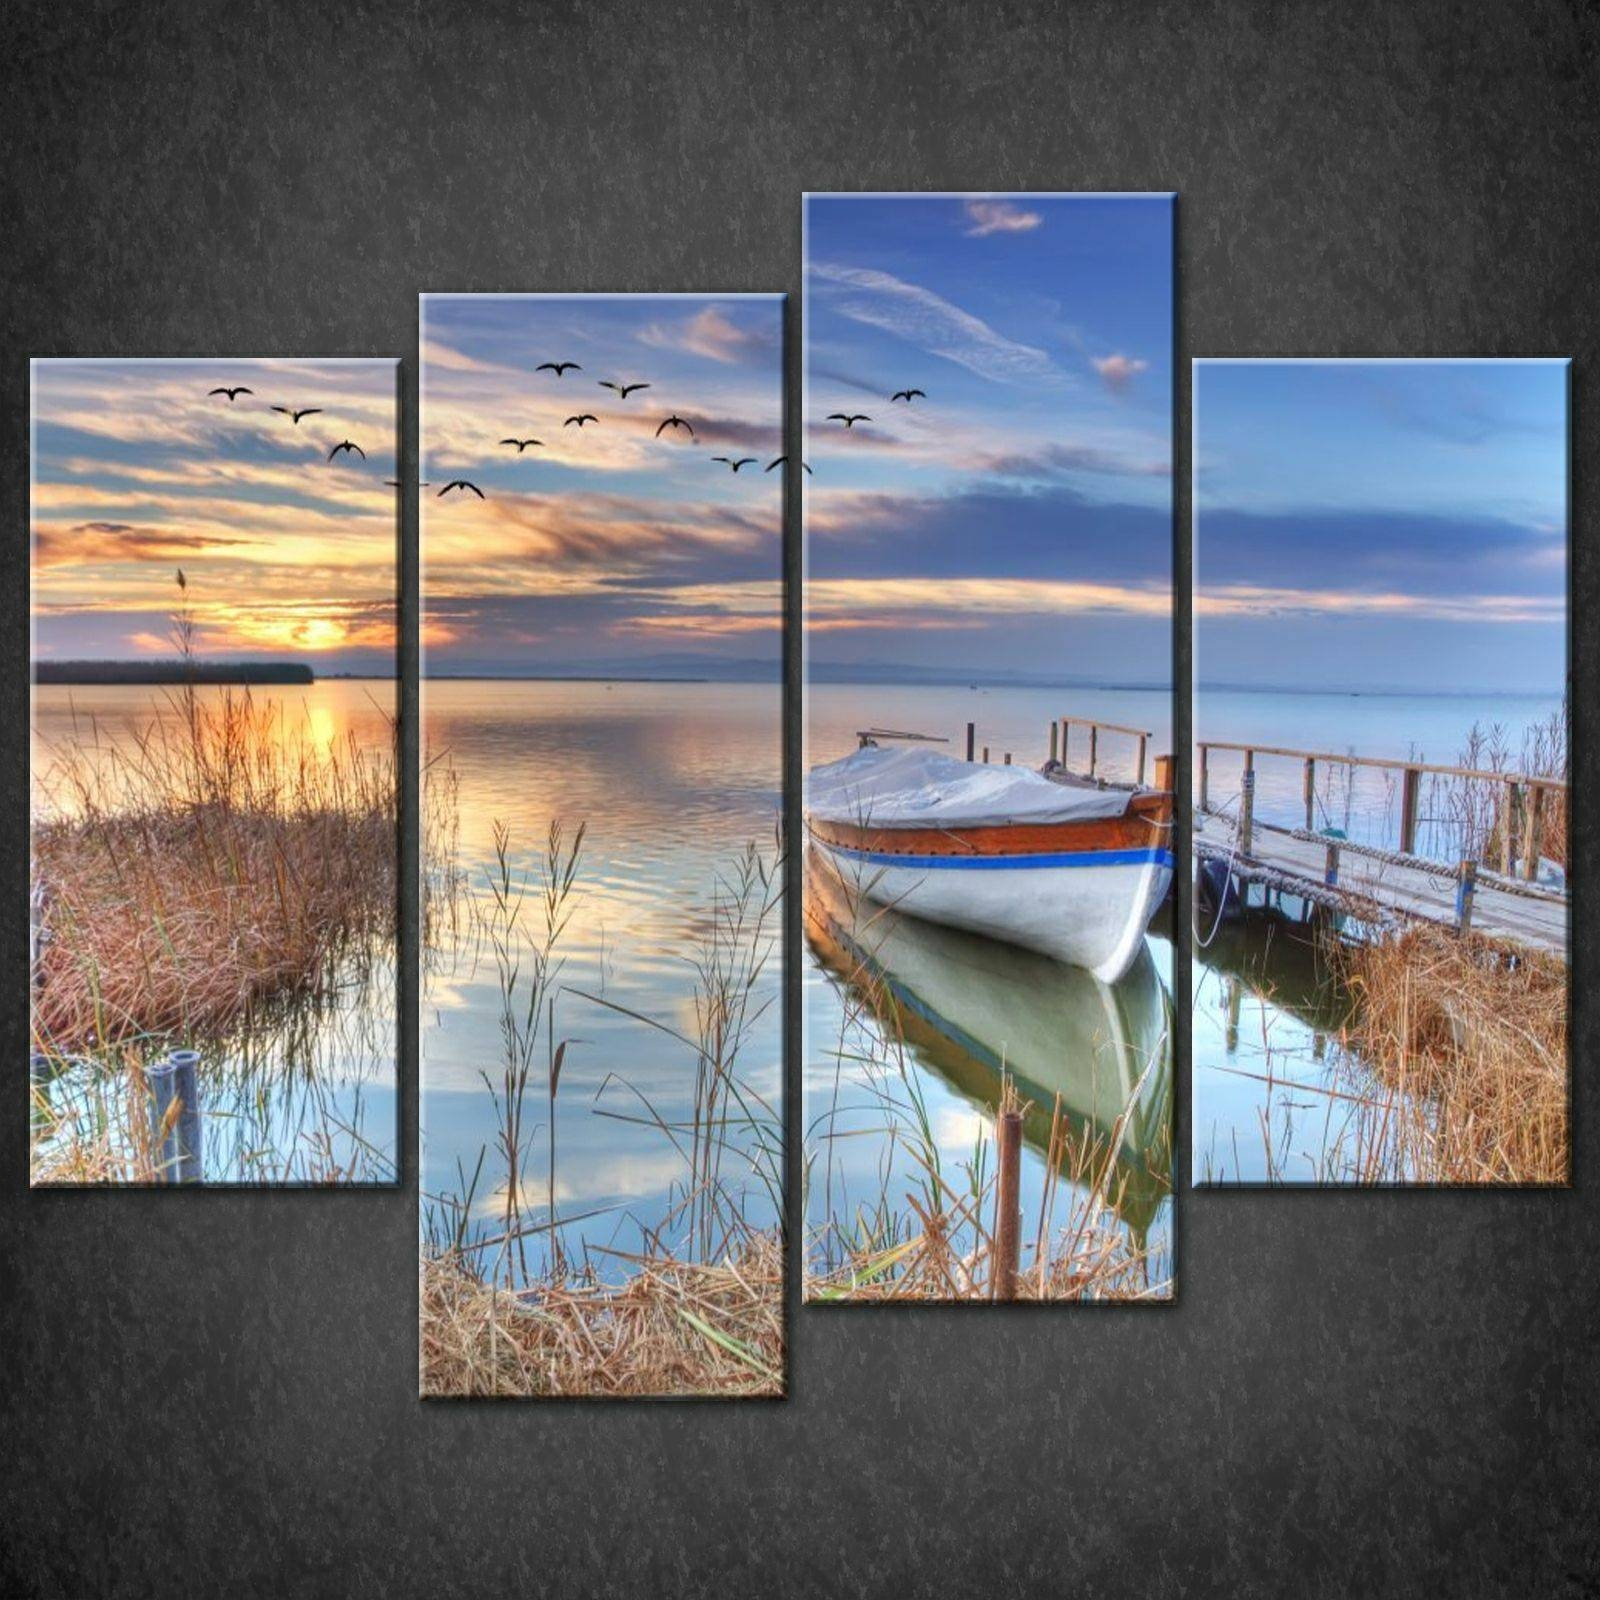 Lake Boat Blue Split Canvas Wall Art Pictures Prints Larger Sizes Intended For Most Recent Boat Wall Art (View 4 of 20)